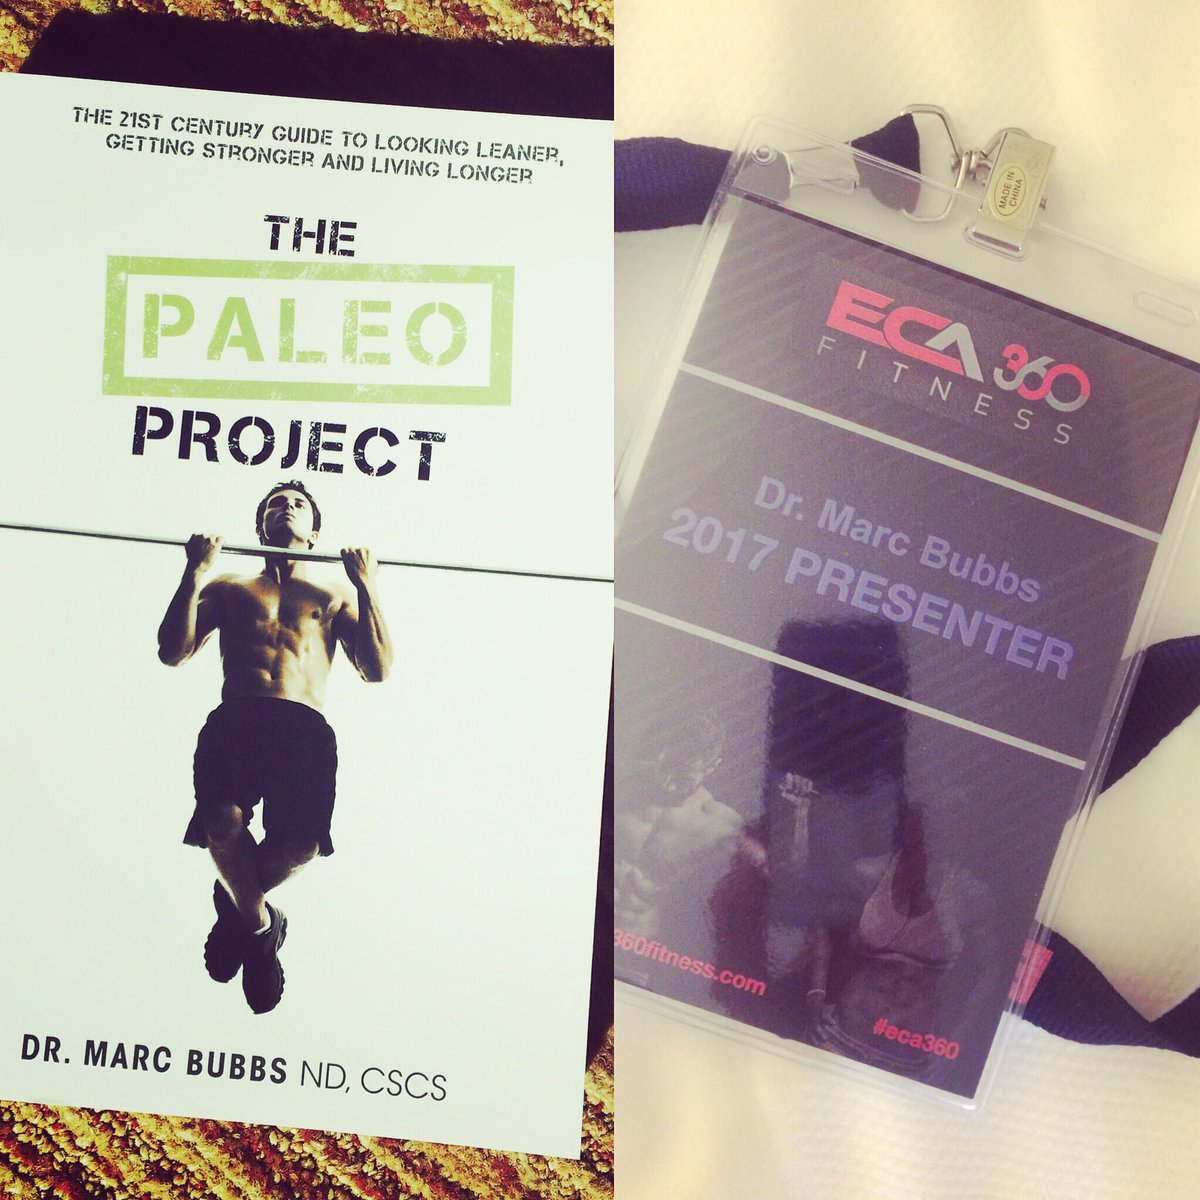 the paleo project the 21st century guide to looking leaner getting stronger and living longer